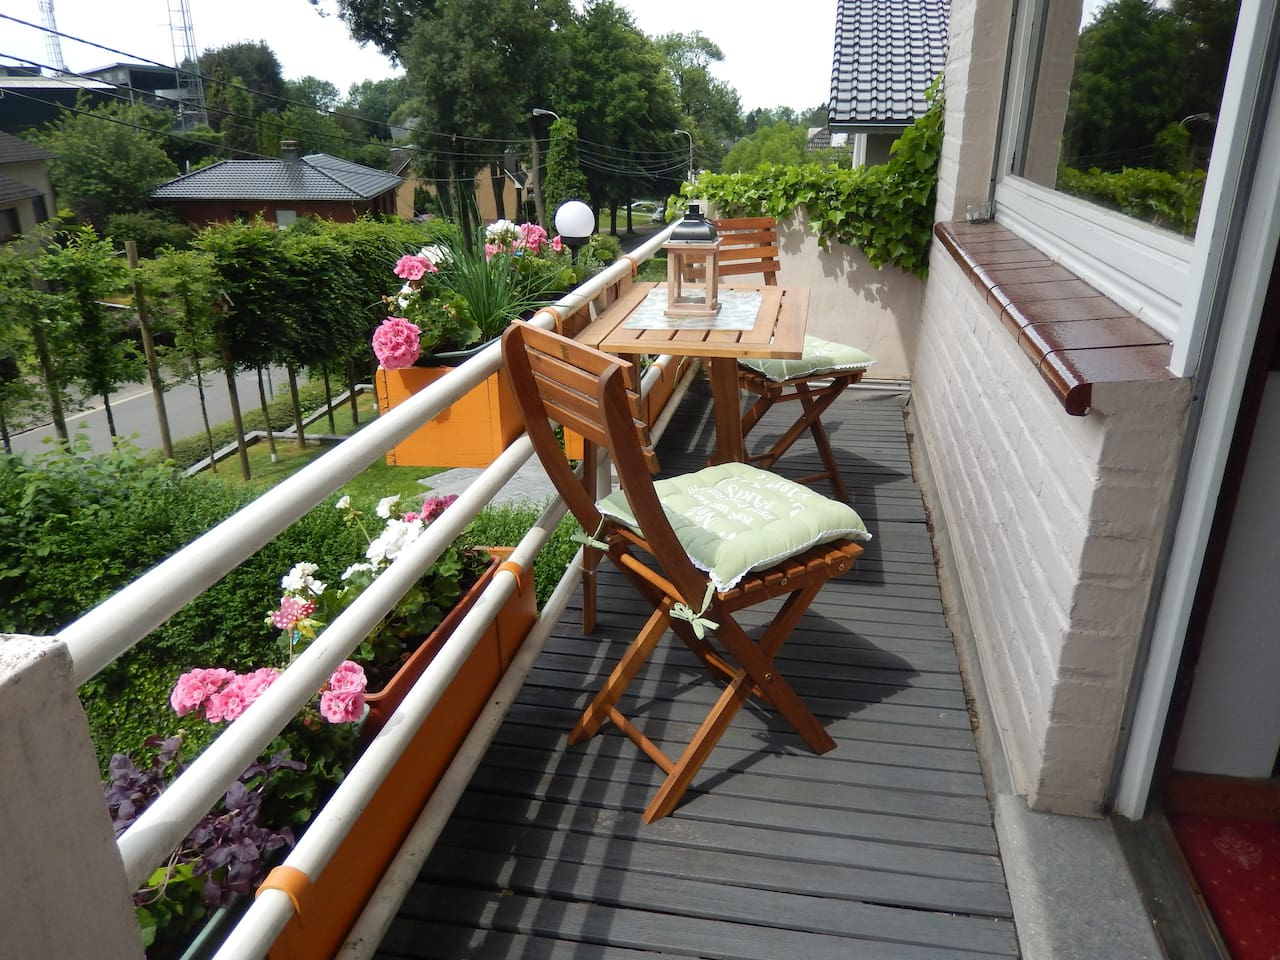 Private balcony adjacent to airbnb room